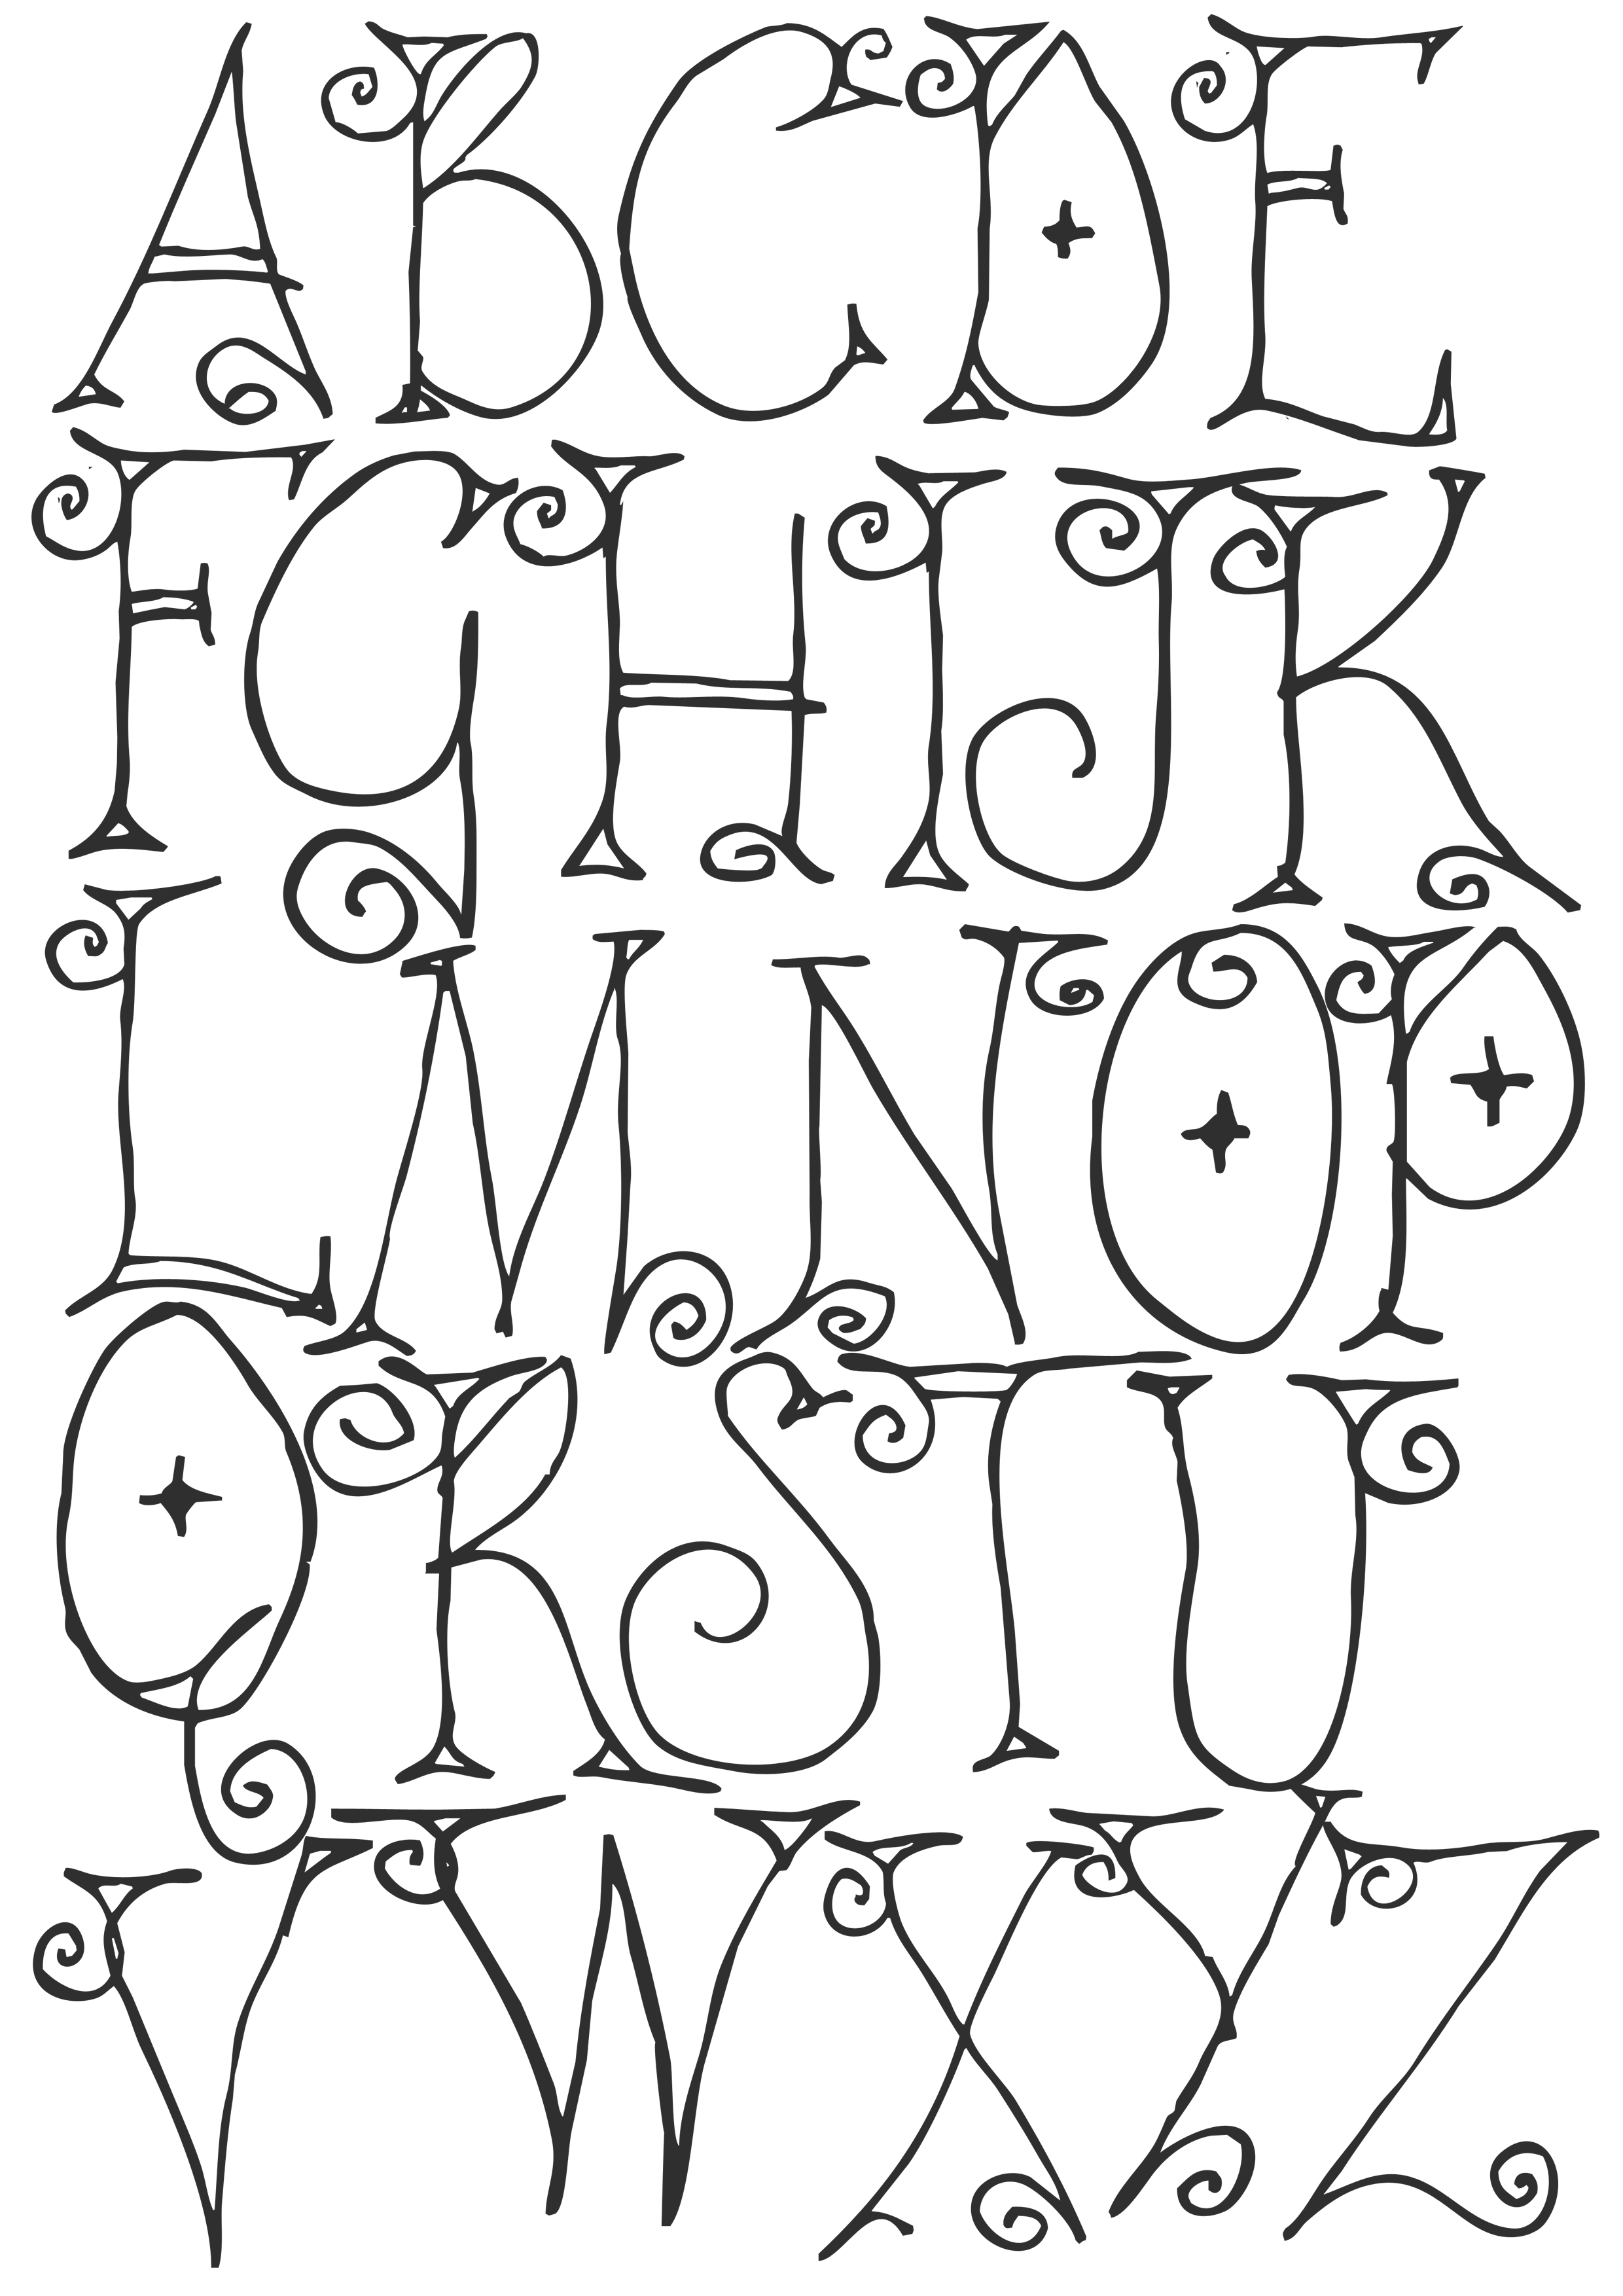 Hand Drawn Whimsical Font